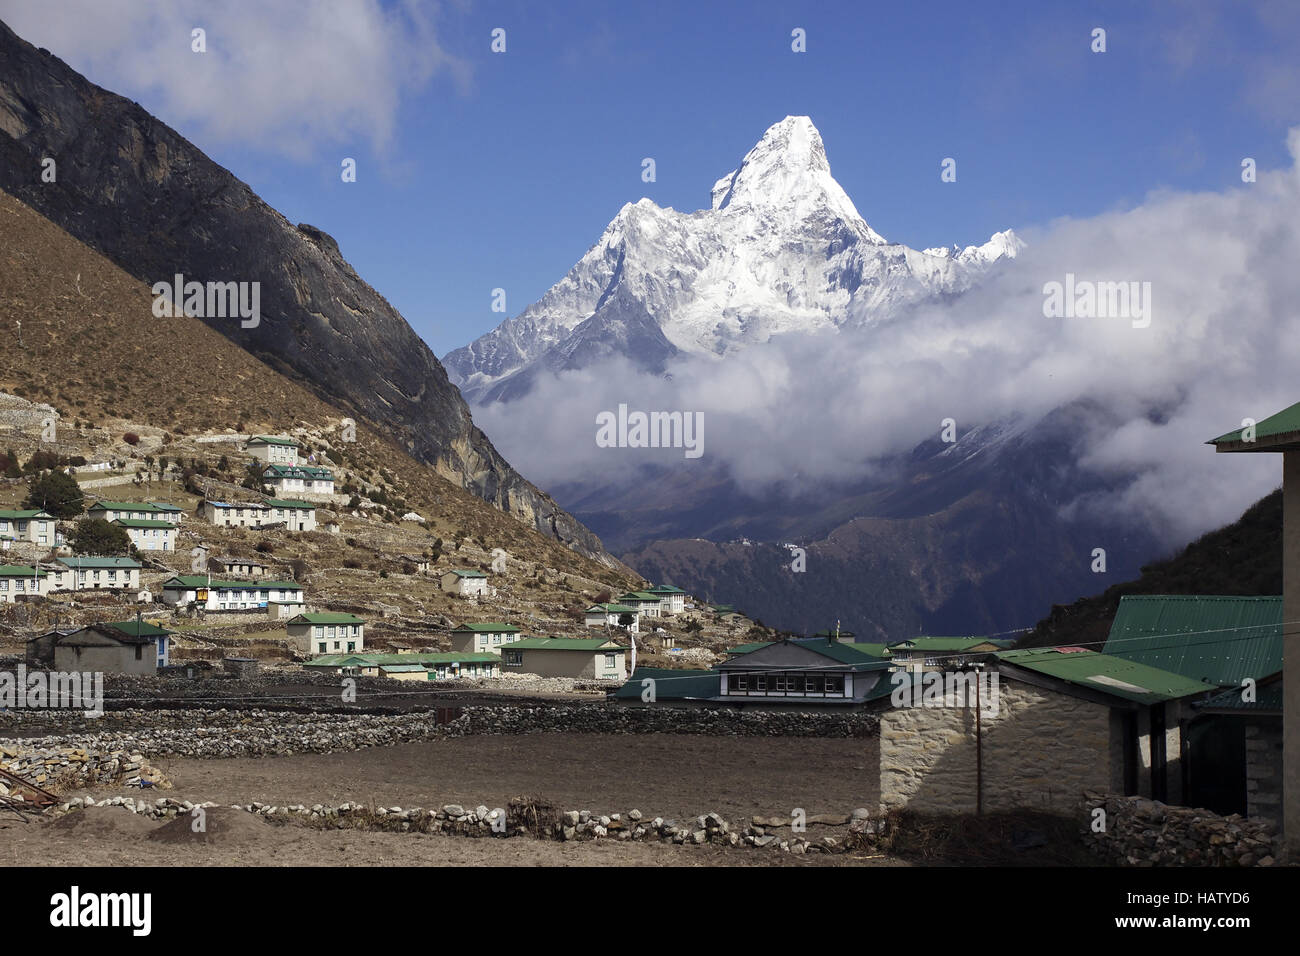 the sherpavillage khumjung in nepal - Stock Image